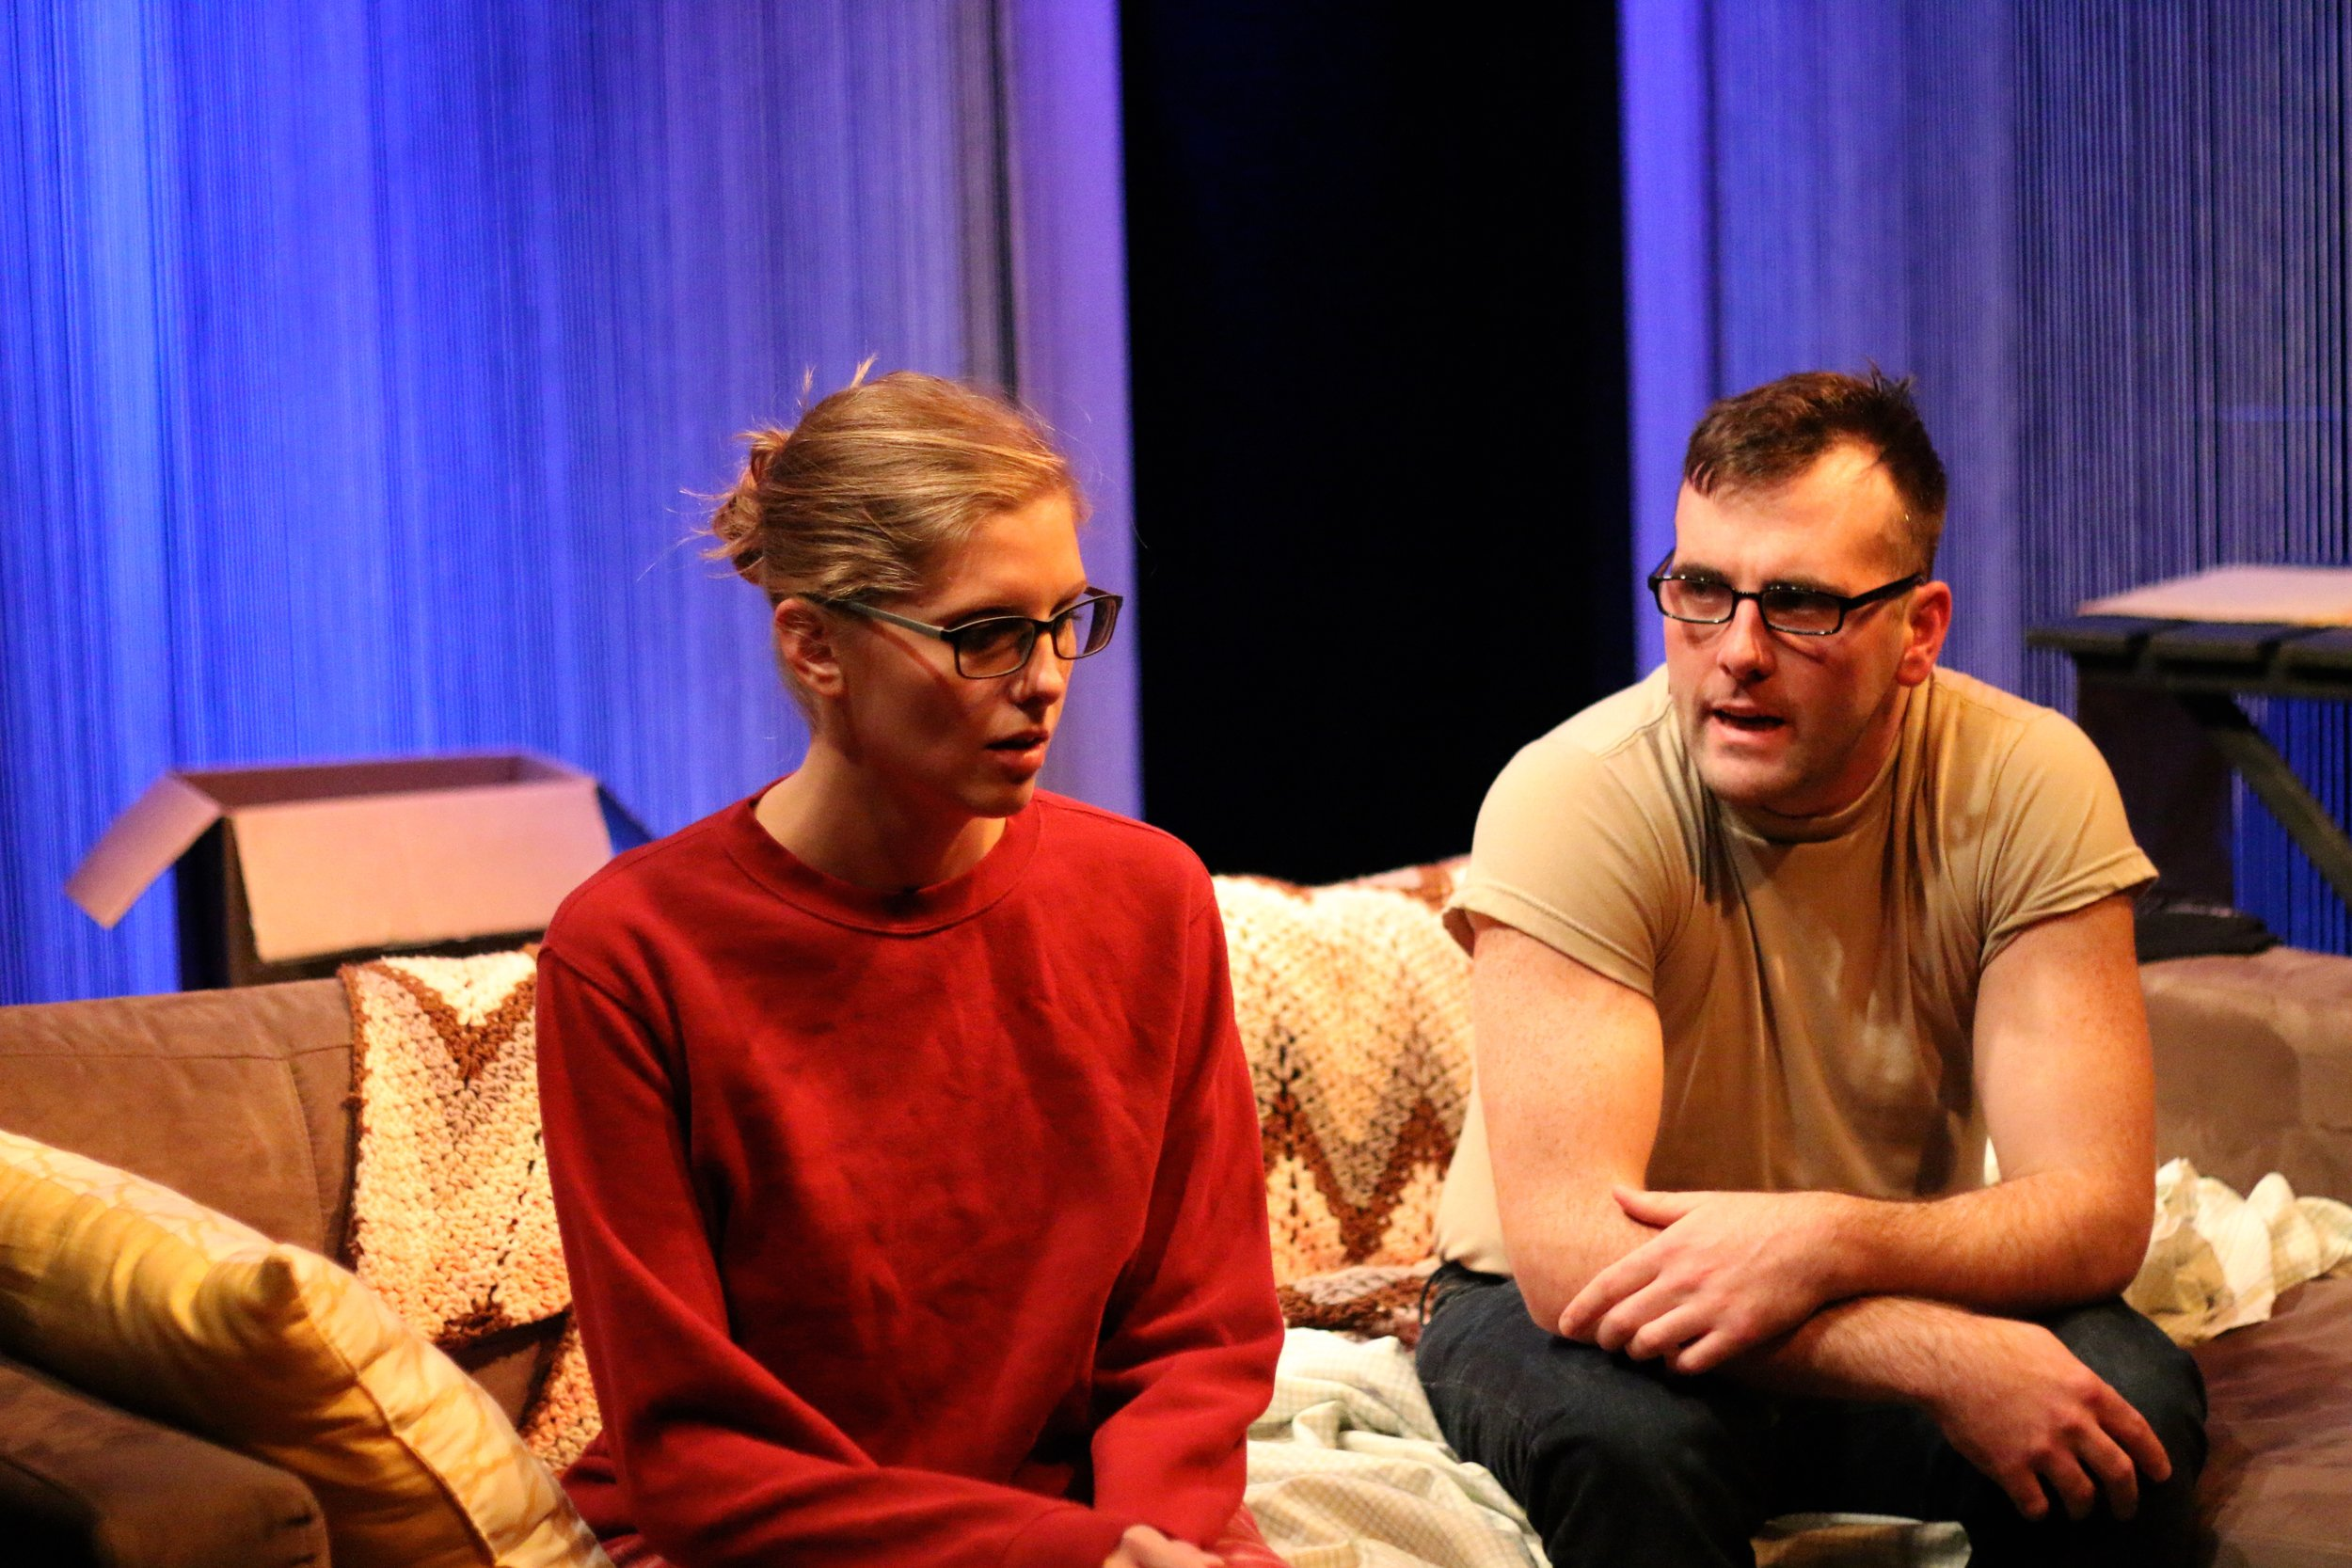 Mickey O'Sullivan as Craig/Peter, Laura Matthews as Kelly